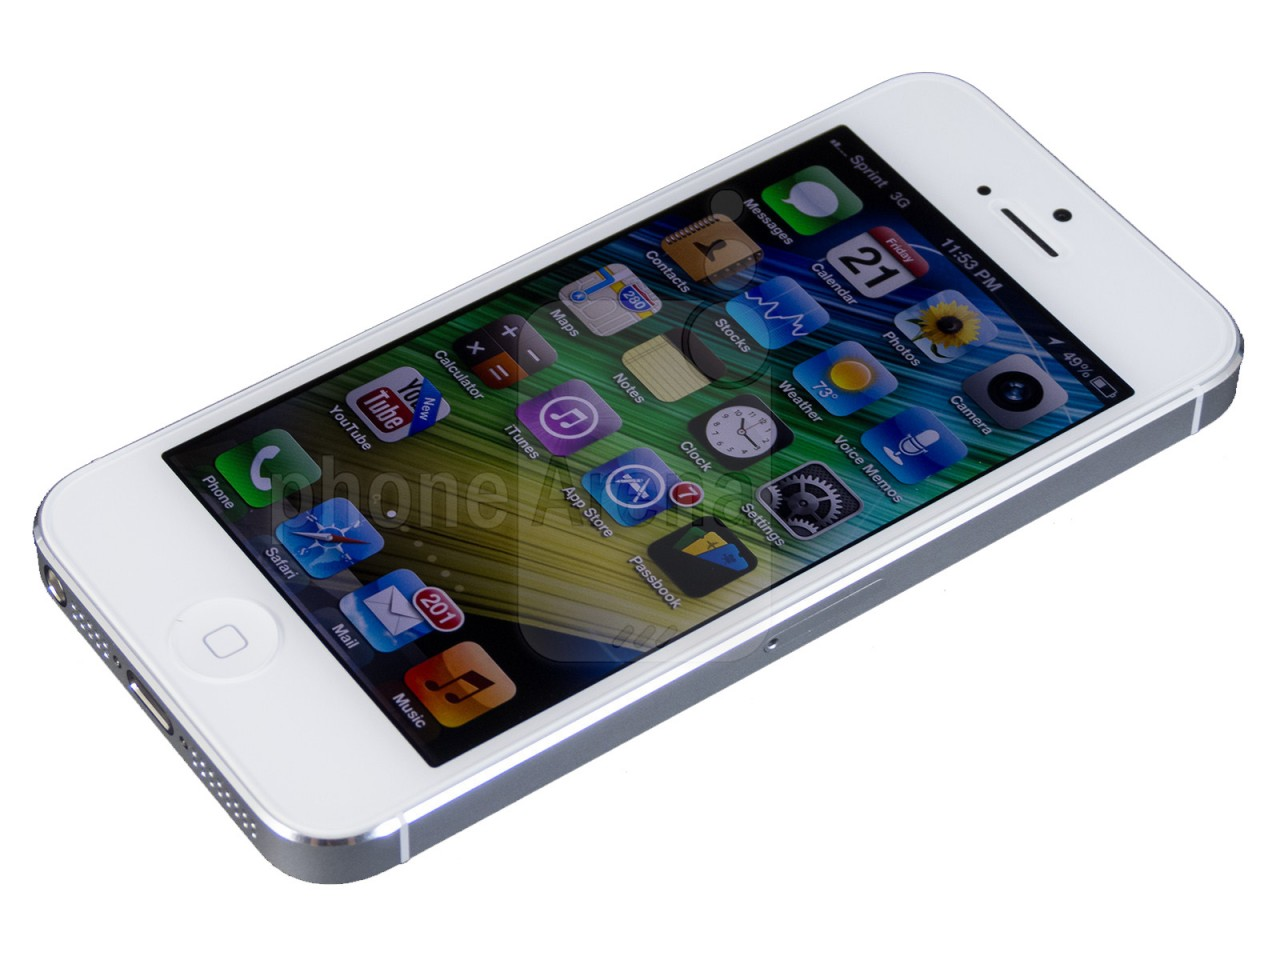 apple phone apple phone apple iphone 5 apple iphone 5 all apple mobile phones 22425